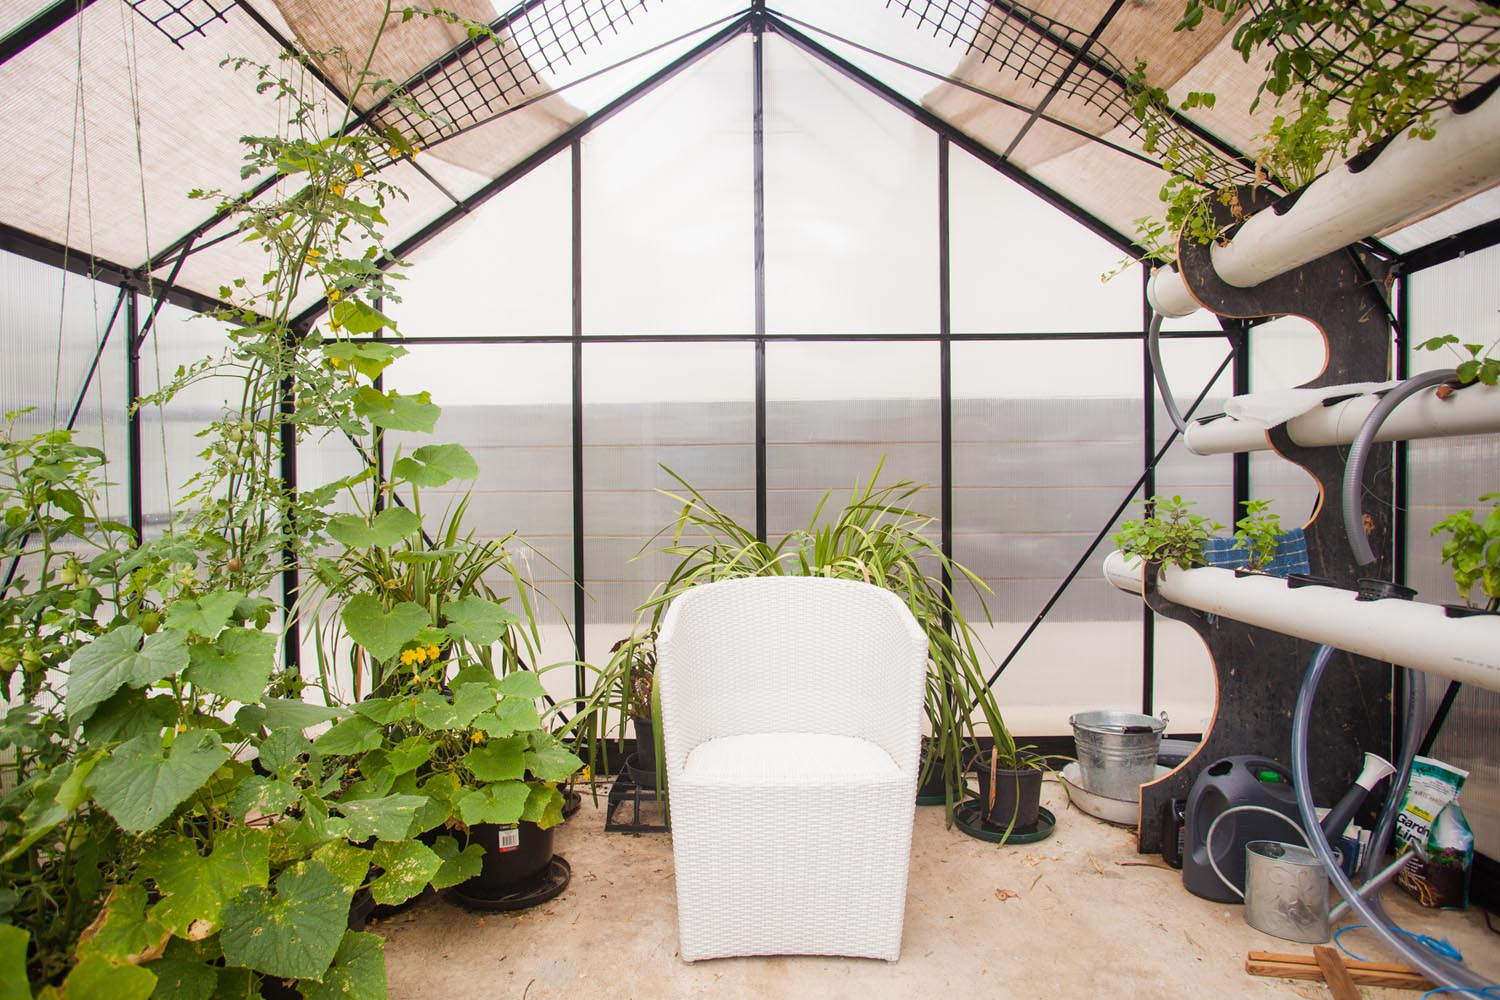 A look inside our lovely big greenhouse, which is now full of fresh cucumbers, tomatoes and herbs